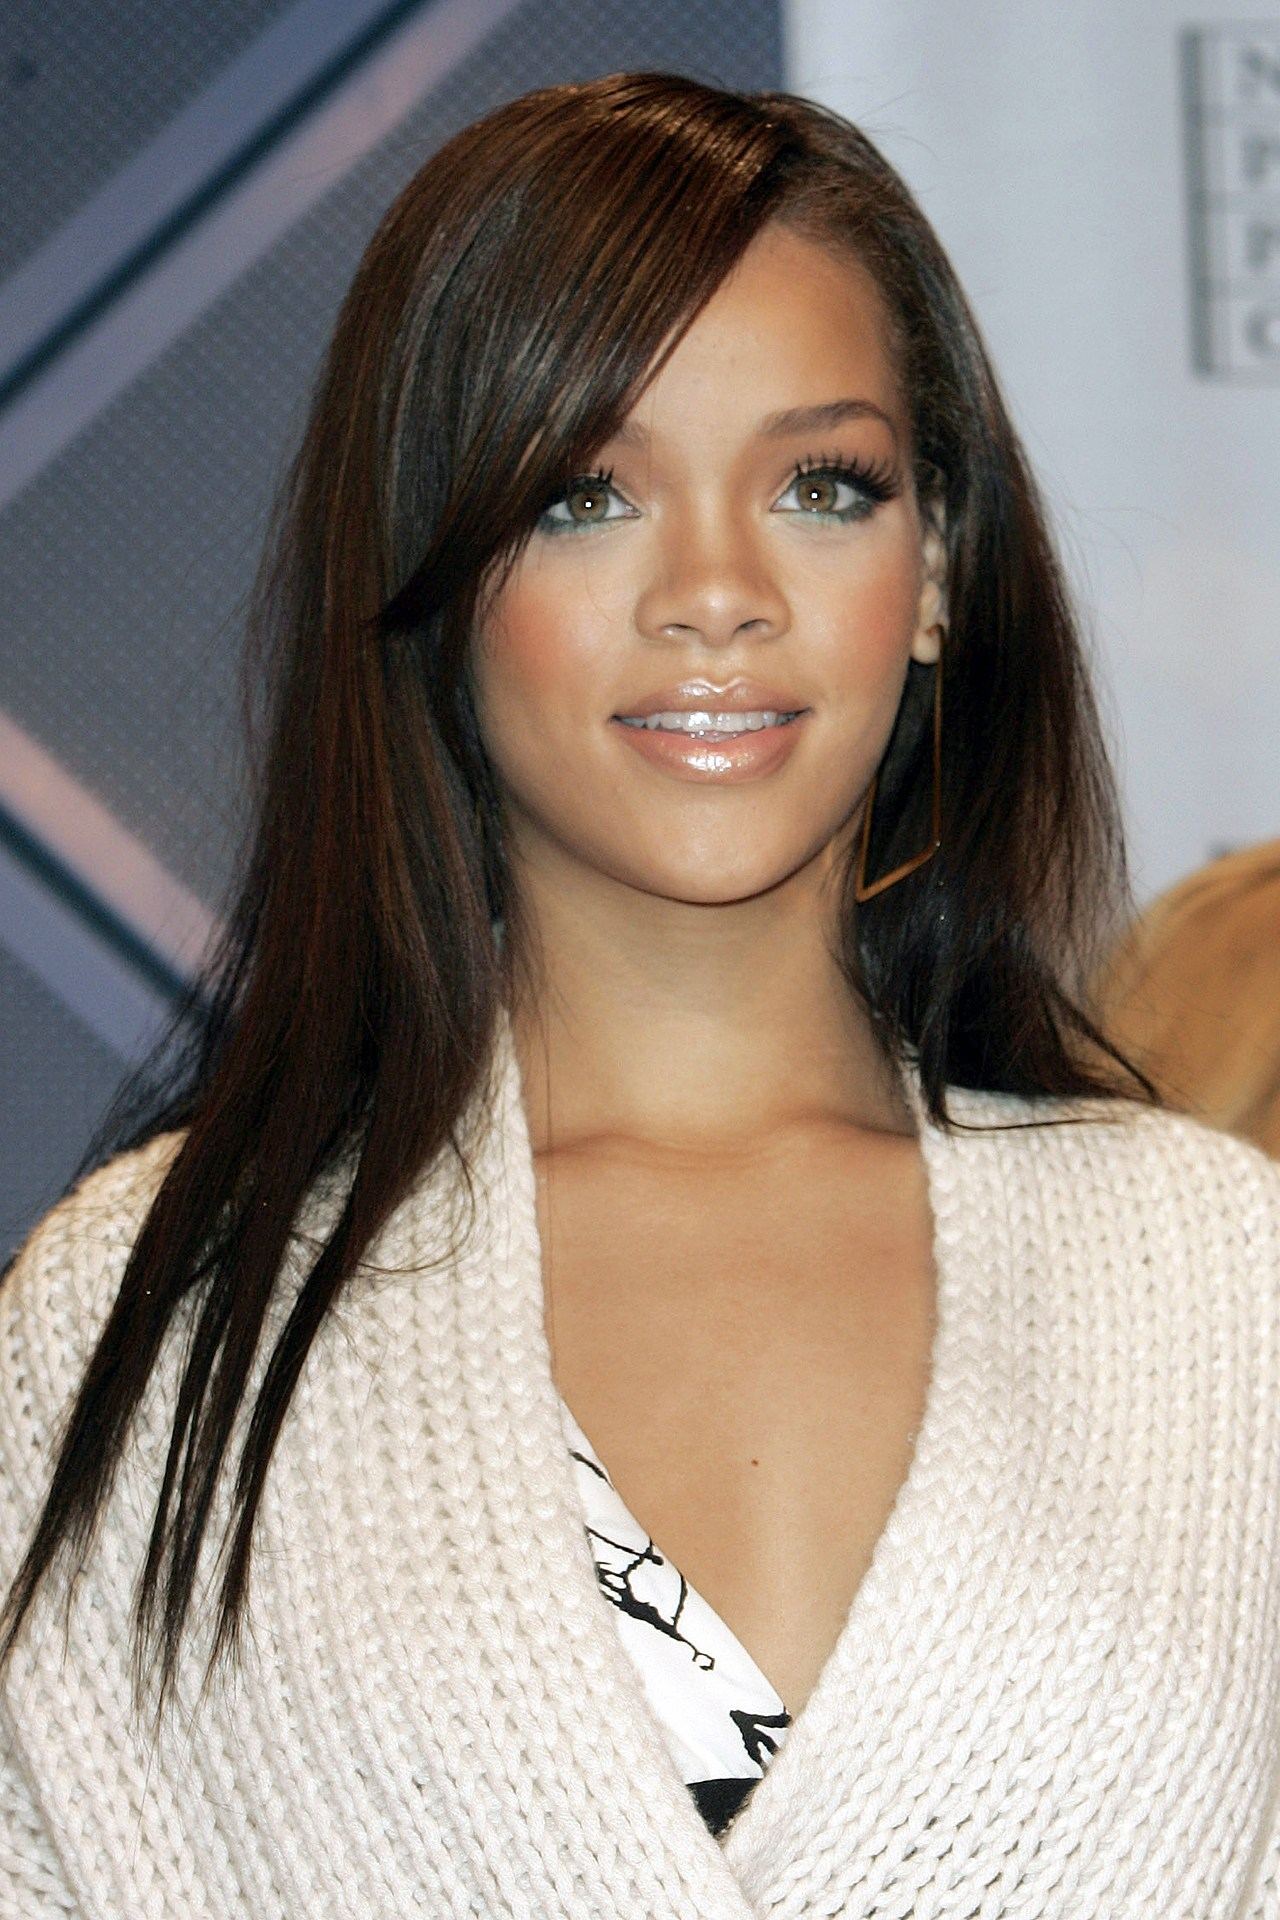 Rihanna Hairstyle 2005 Salon Price Lady